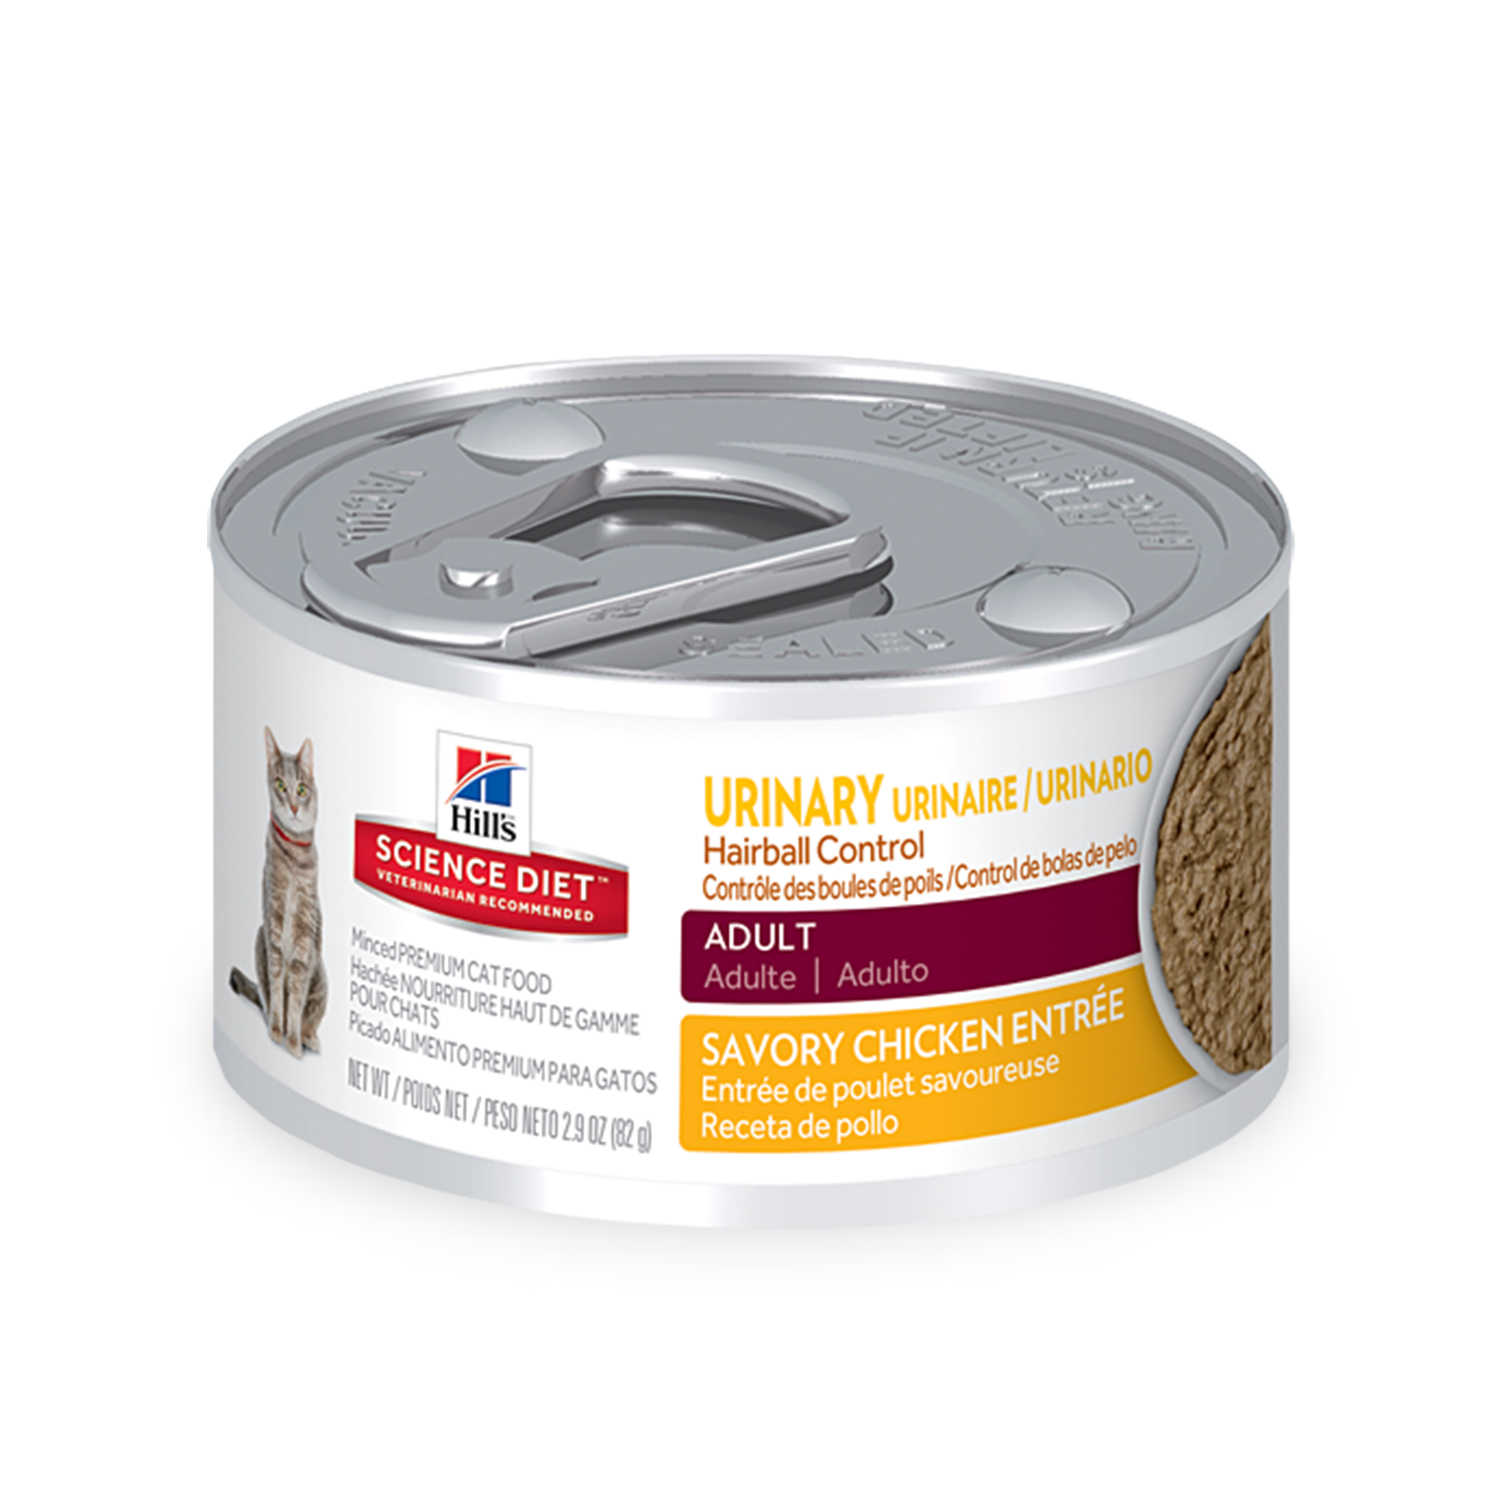 Hill's Science Diet (Spend $20, Get $5) Adult Urinary & Hairball Control Wet Cat Food, 2.9 oz, 24-pack (See description for rebate details)